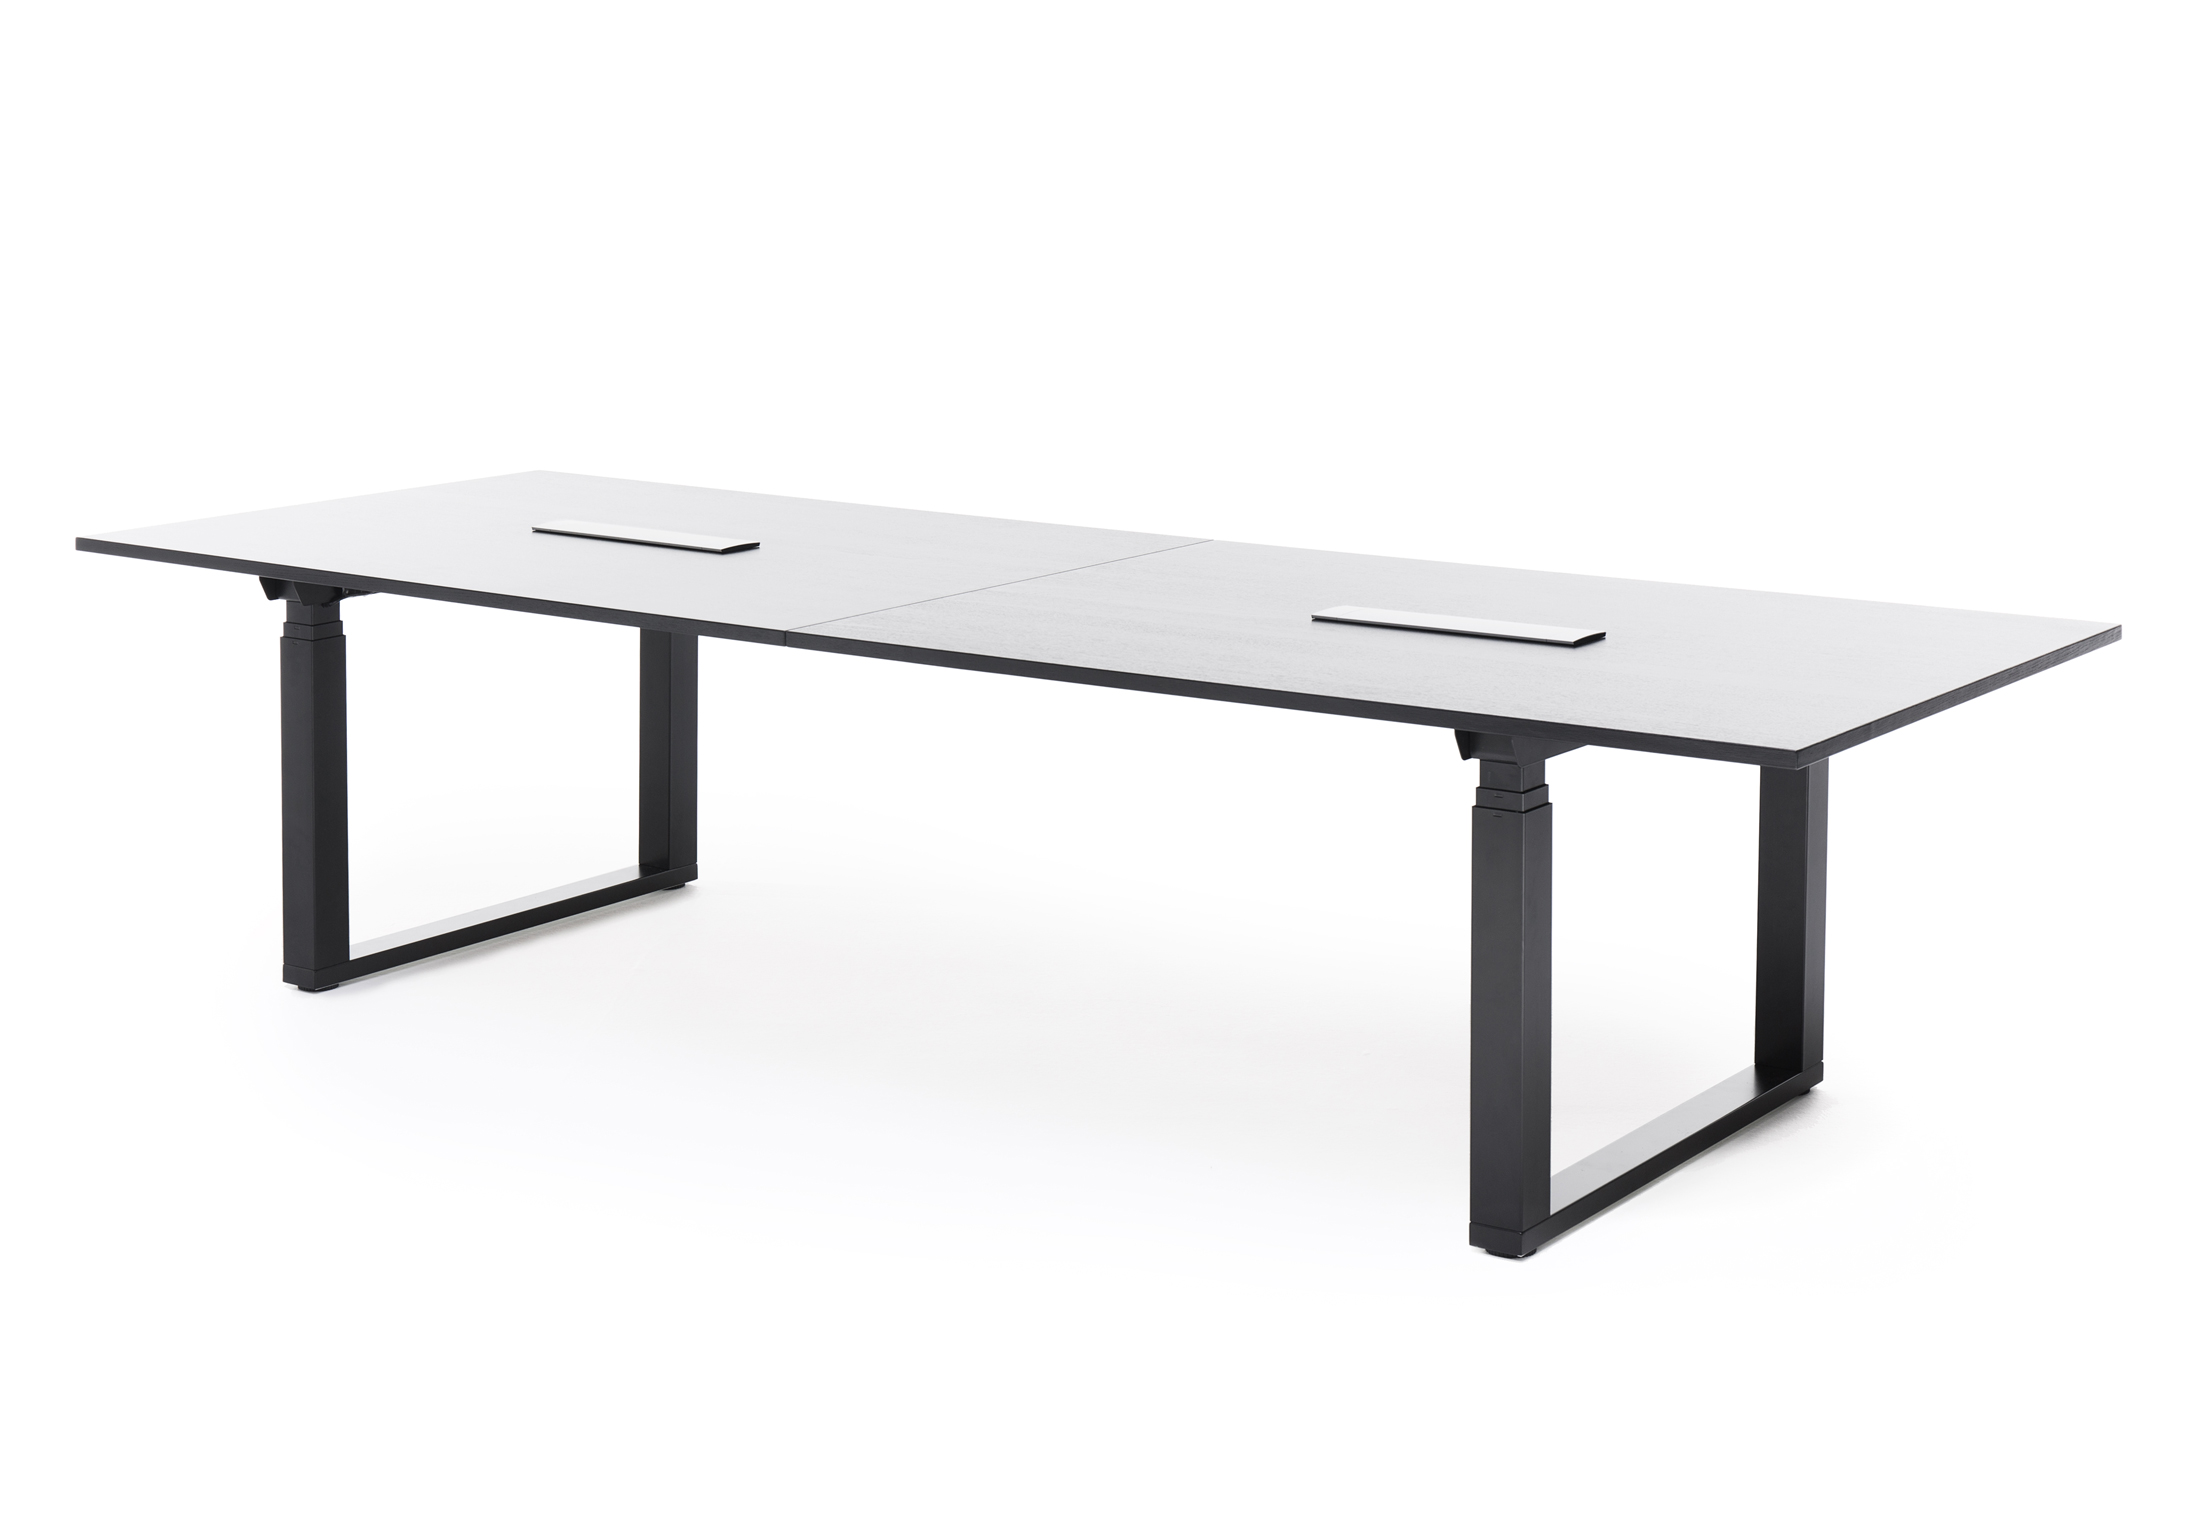 Frankie Height Adjustable Conference Table By Martela STYLEPARK - Conference room table height